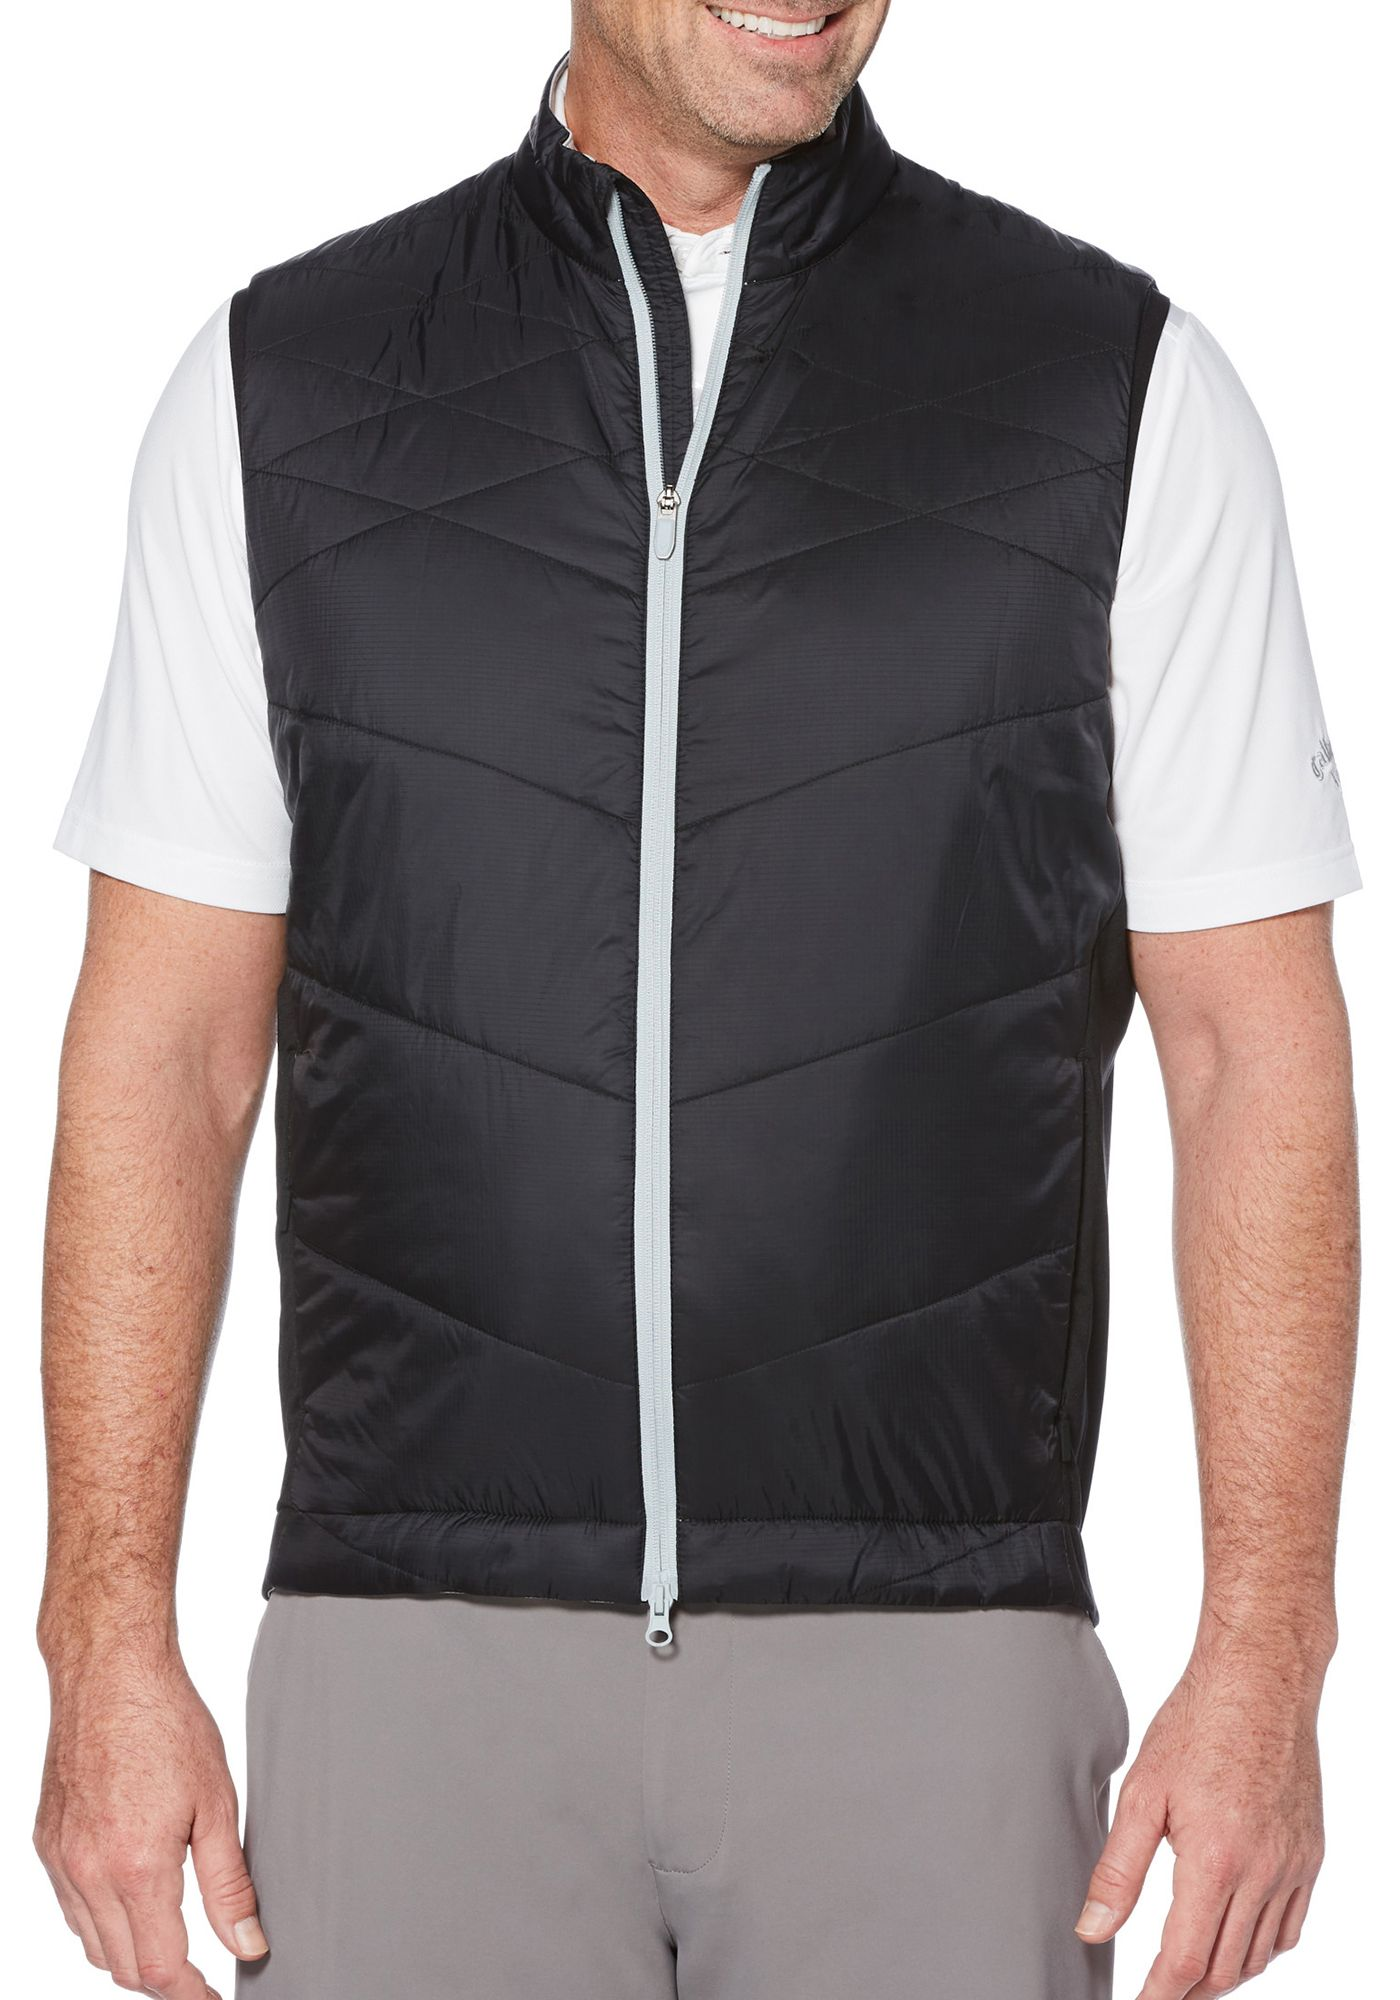 Callaway Men's Swing-Tech Quilted Golf Vest